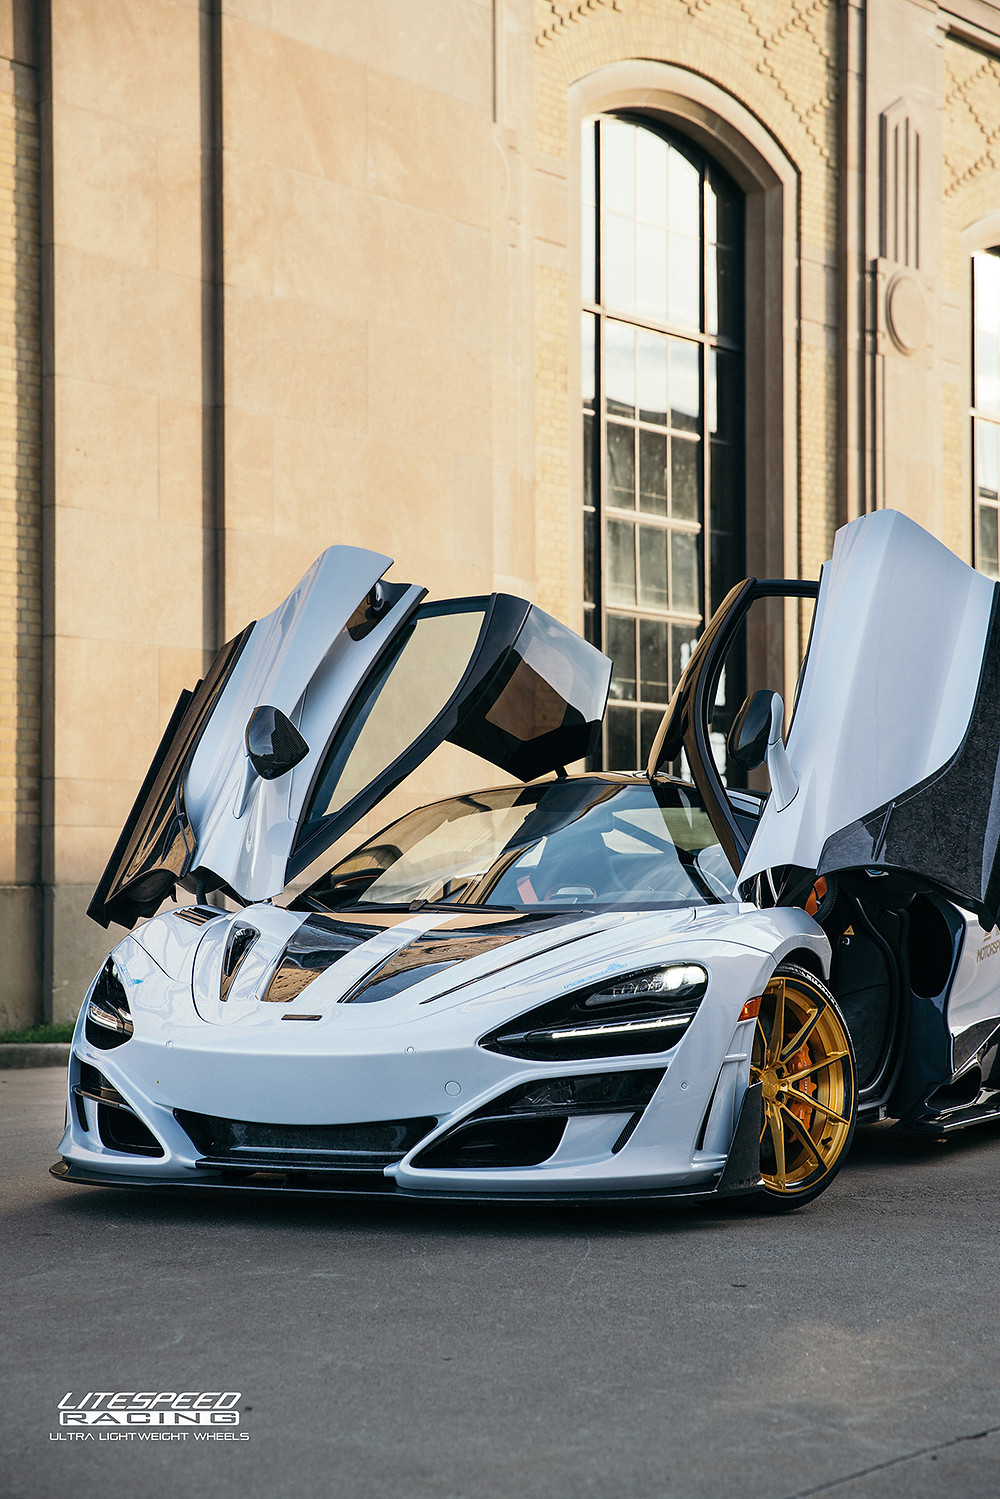 Mansory Mclaren 720s with gold and carbon wheels